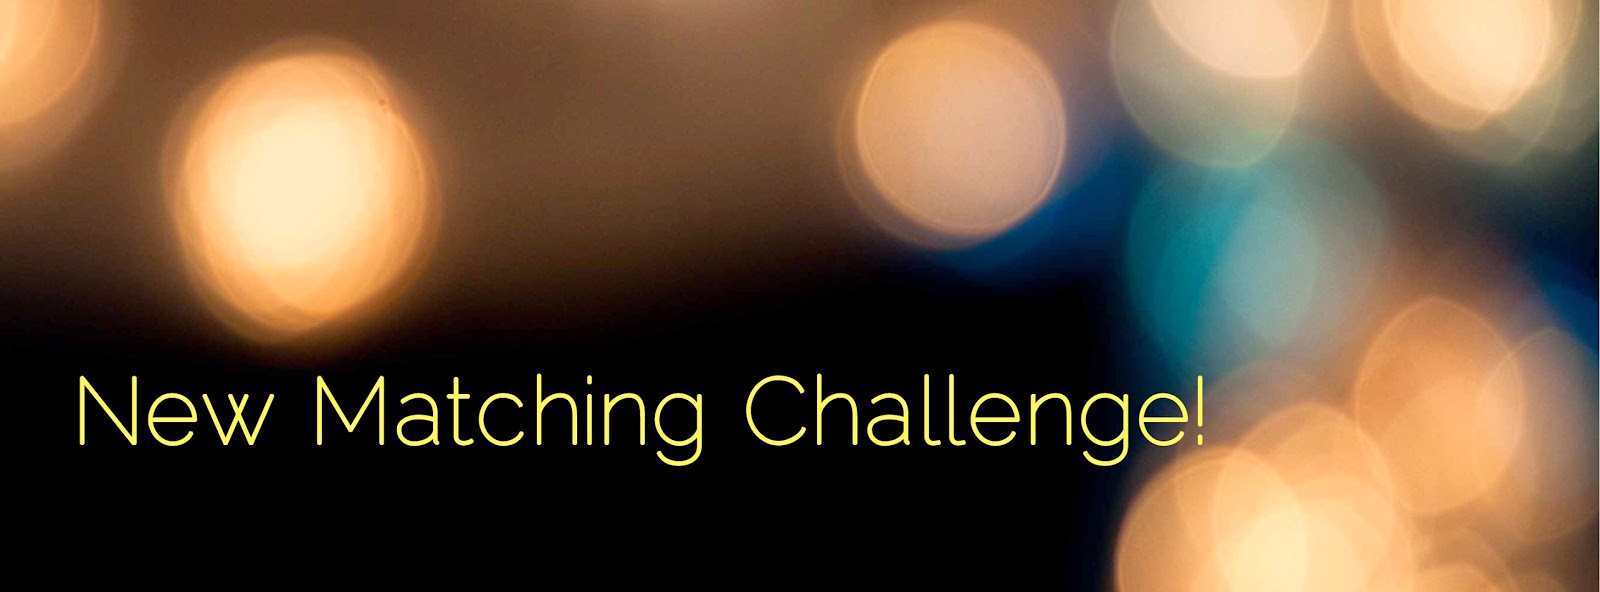 New Matching Challenge Benefitting CPC!